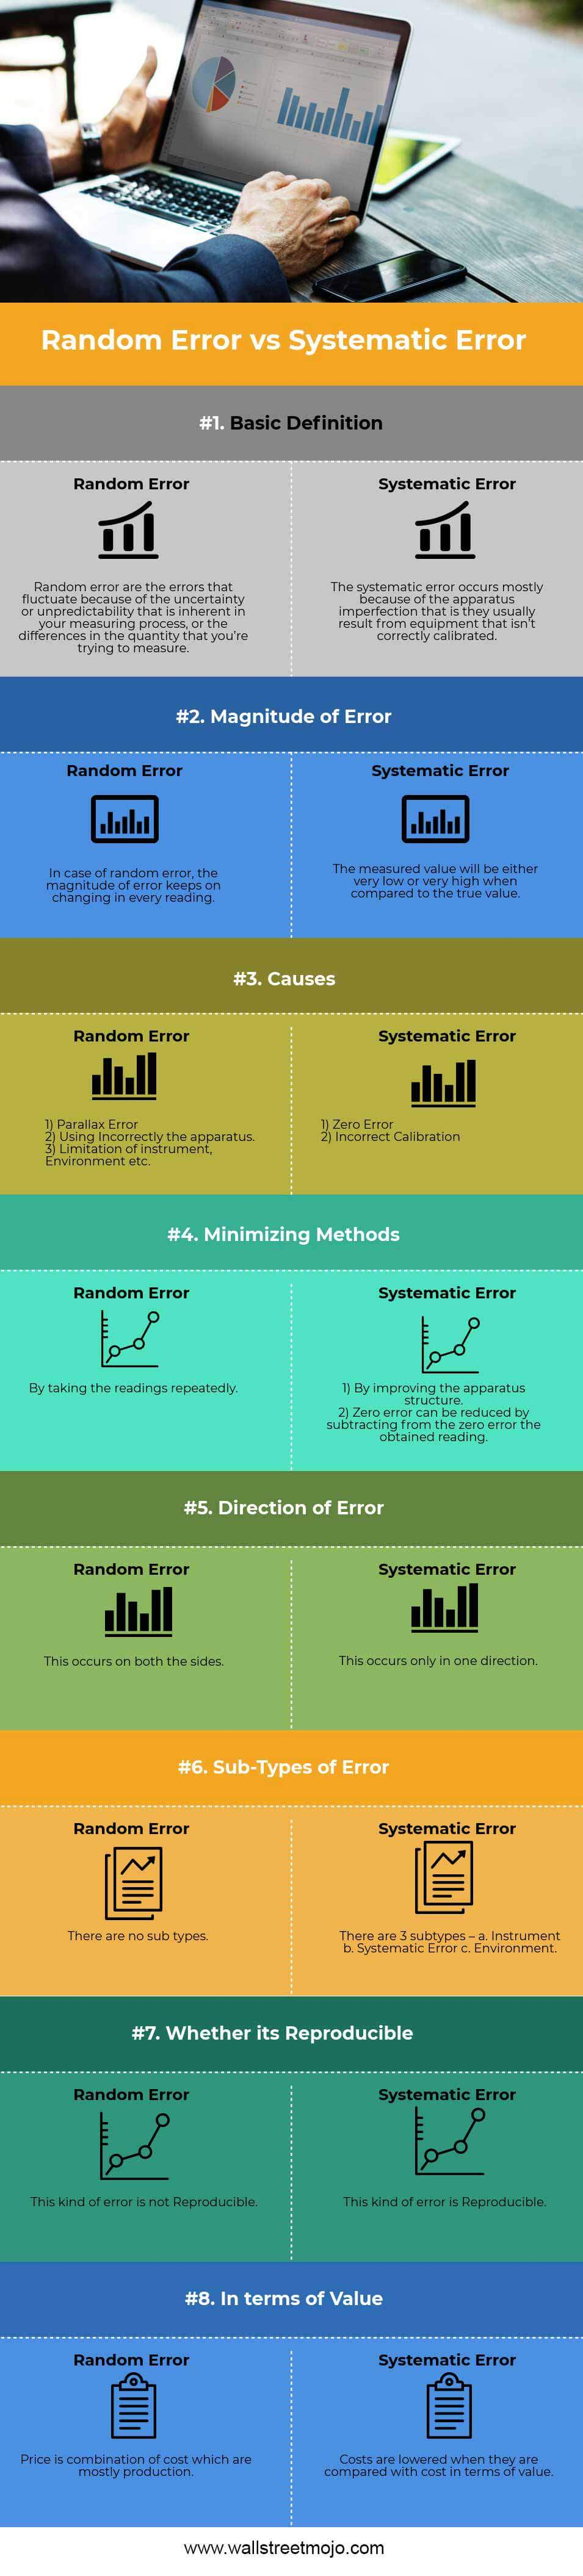 Random-Error-vs-Systematic-Error info